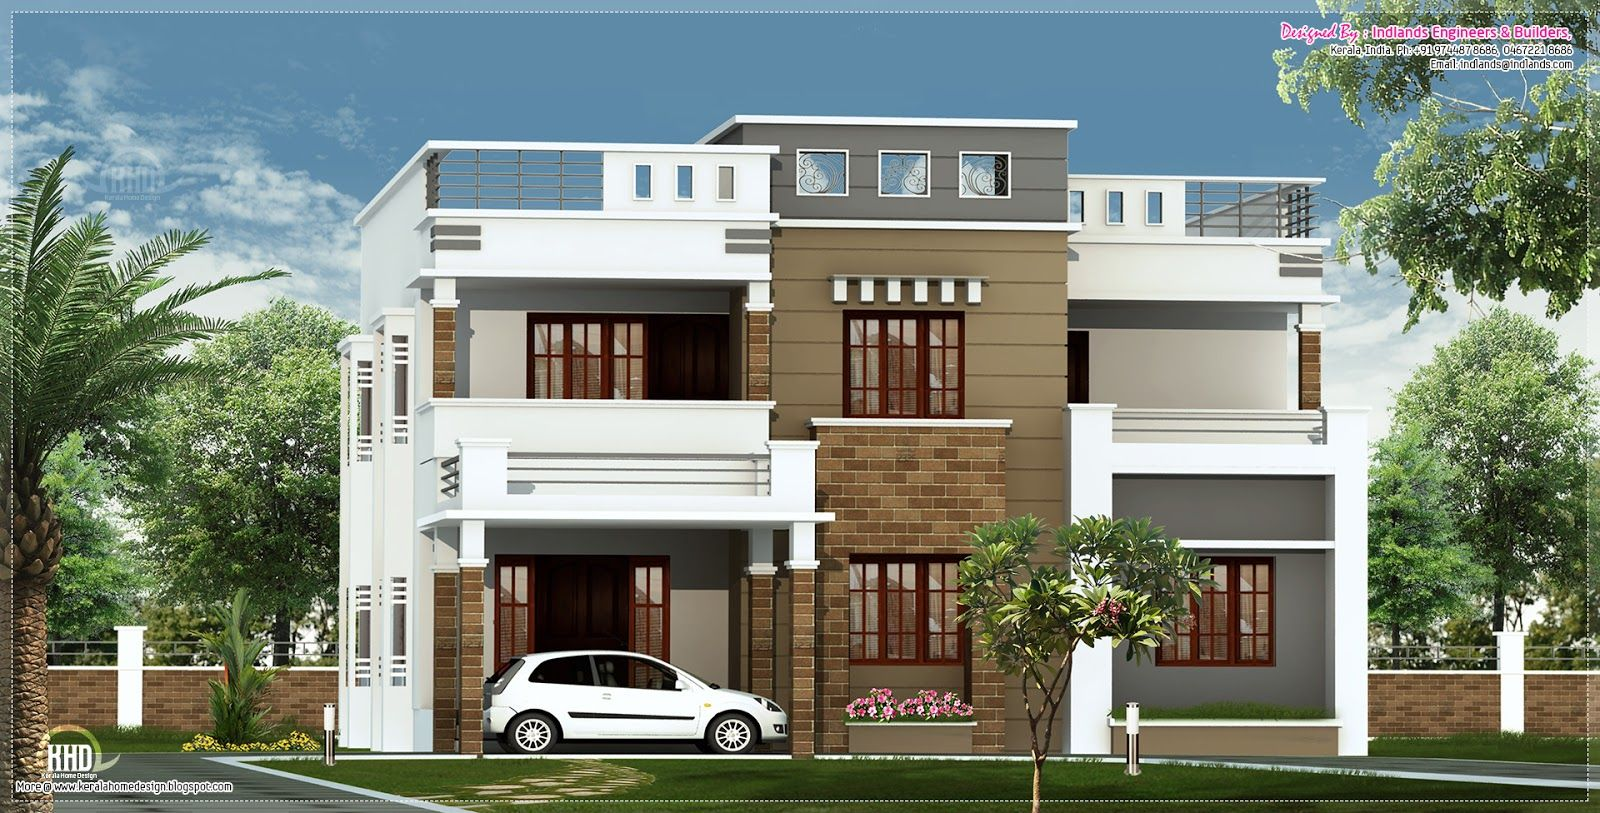 4 bedroom house with roof terrace plans google search for Top 10 house design